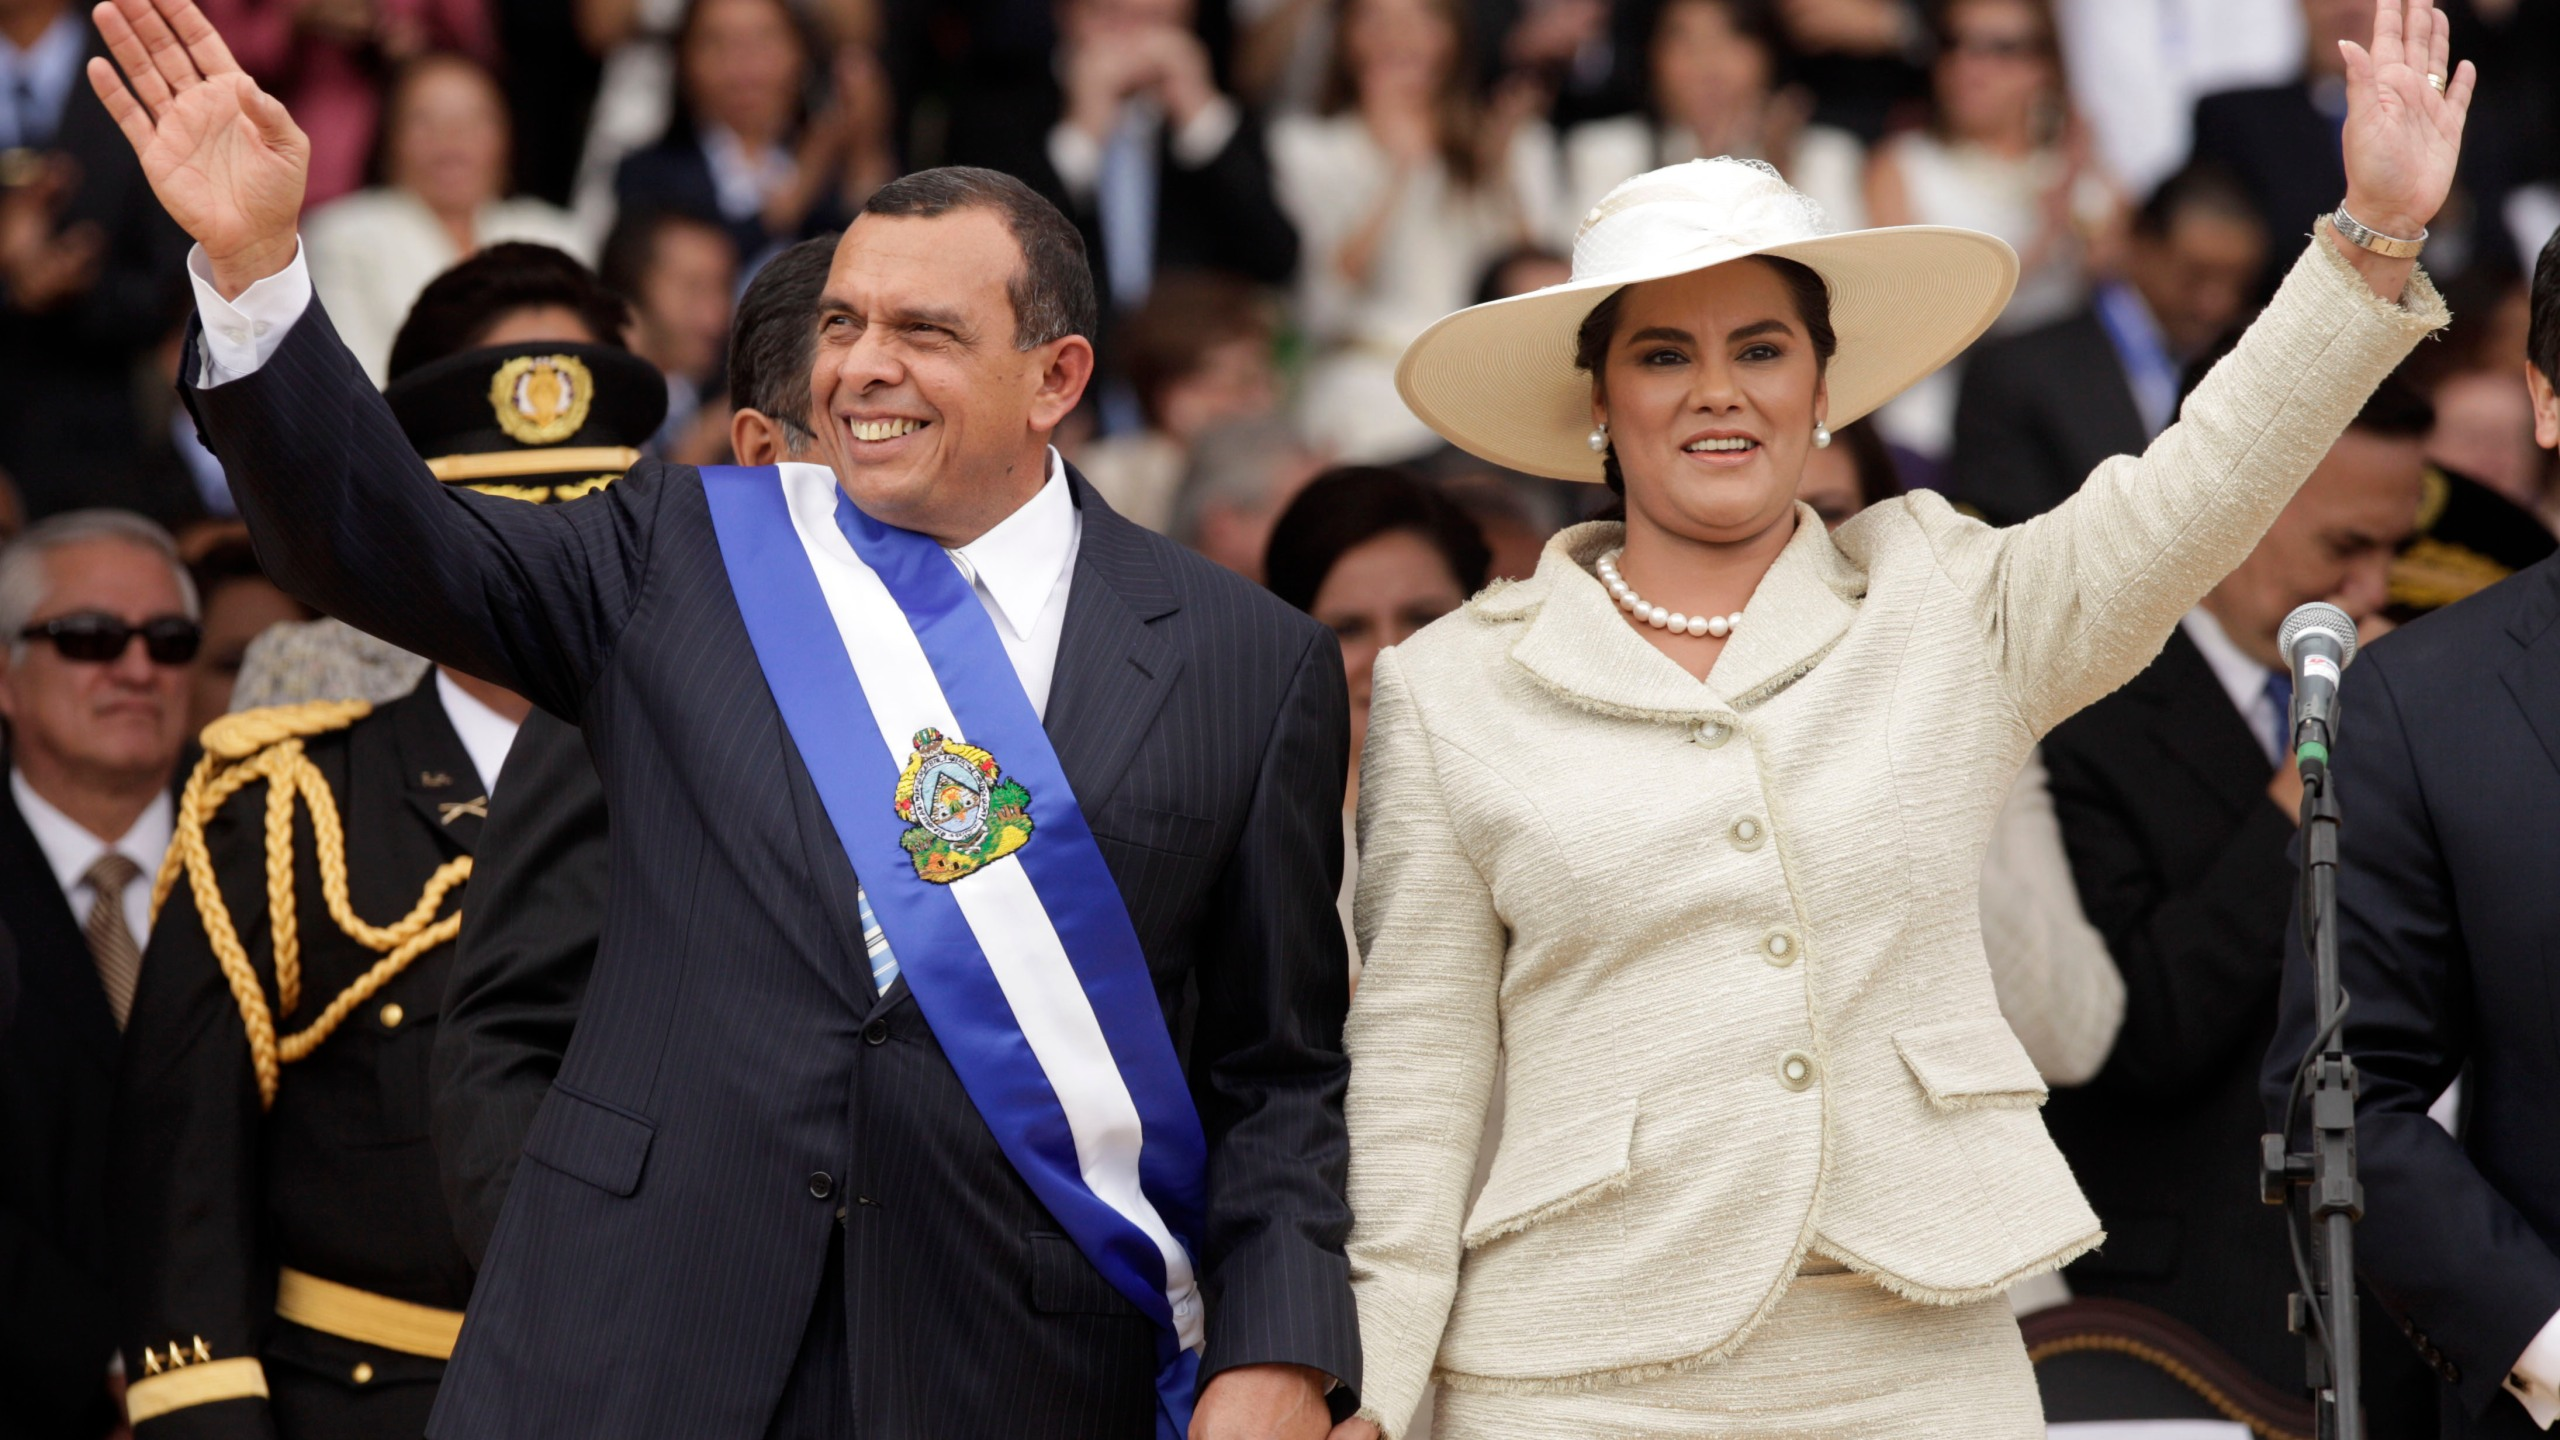 In this Jan. 27, 2010 file photo, wearing the presidential sash, Honduran President Porfirio Lobo and his wife First Lady Rosa Elena wave after Lobo was sworn in as the new president during his inauguration ceremony in Tegucigalpa. (AP Photo/Arnulfo Franco, File)